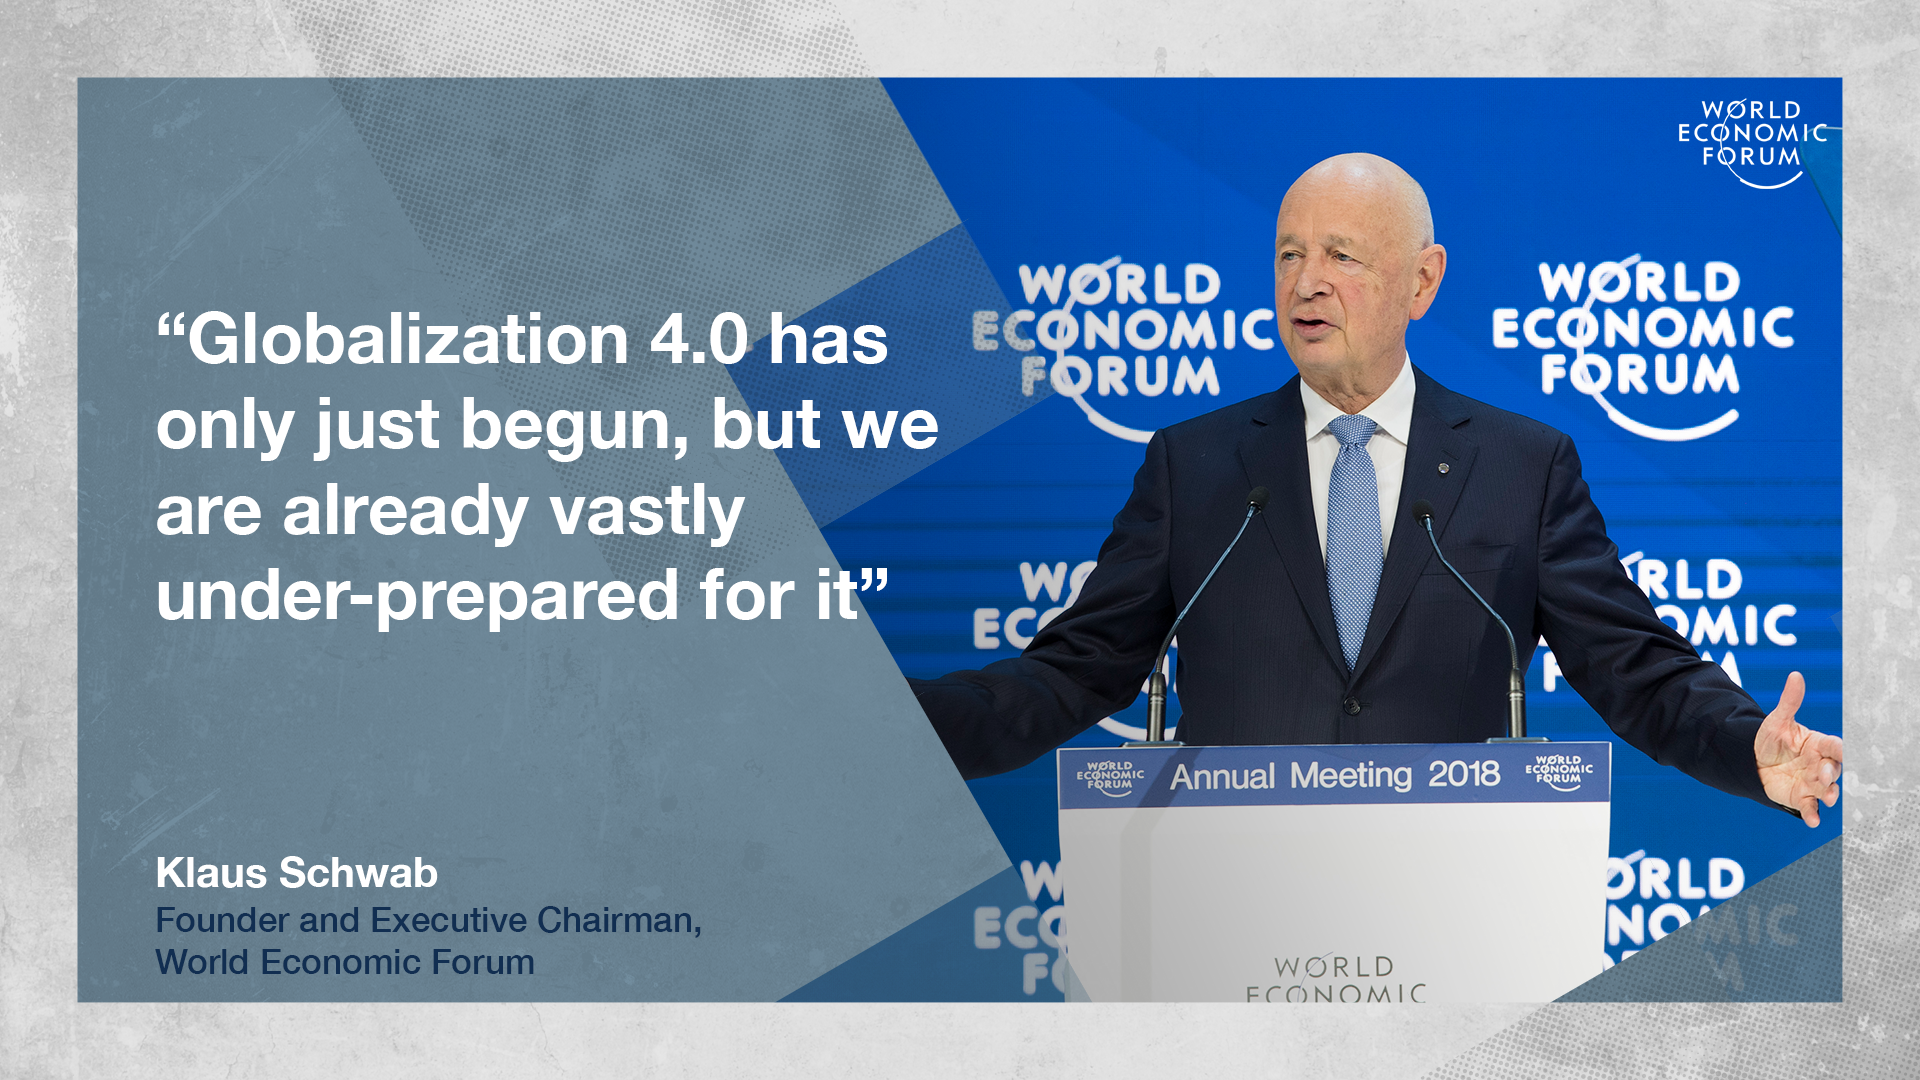 Charles Schwab Co Inc. Klaus Schwab Founder And Executive Chairman World Economic Forum Joseph R Biden Jr Vice President Of The United States Of America At The Annual Meeting 201